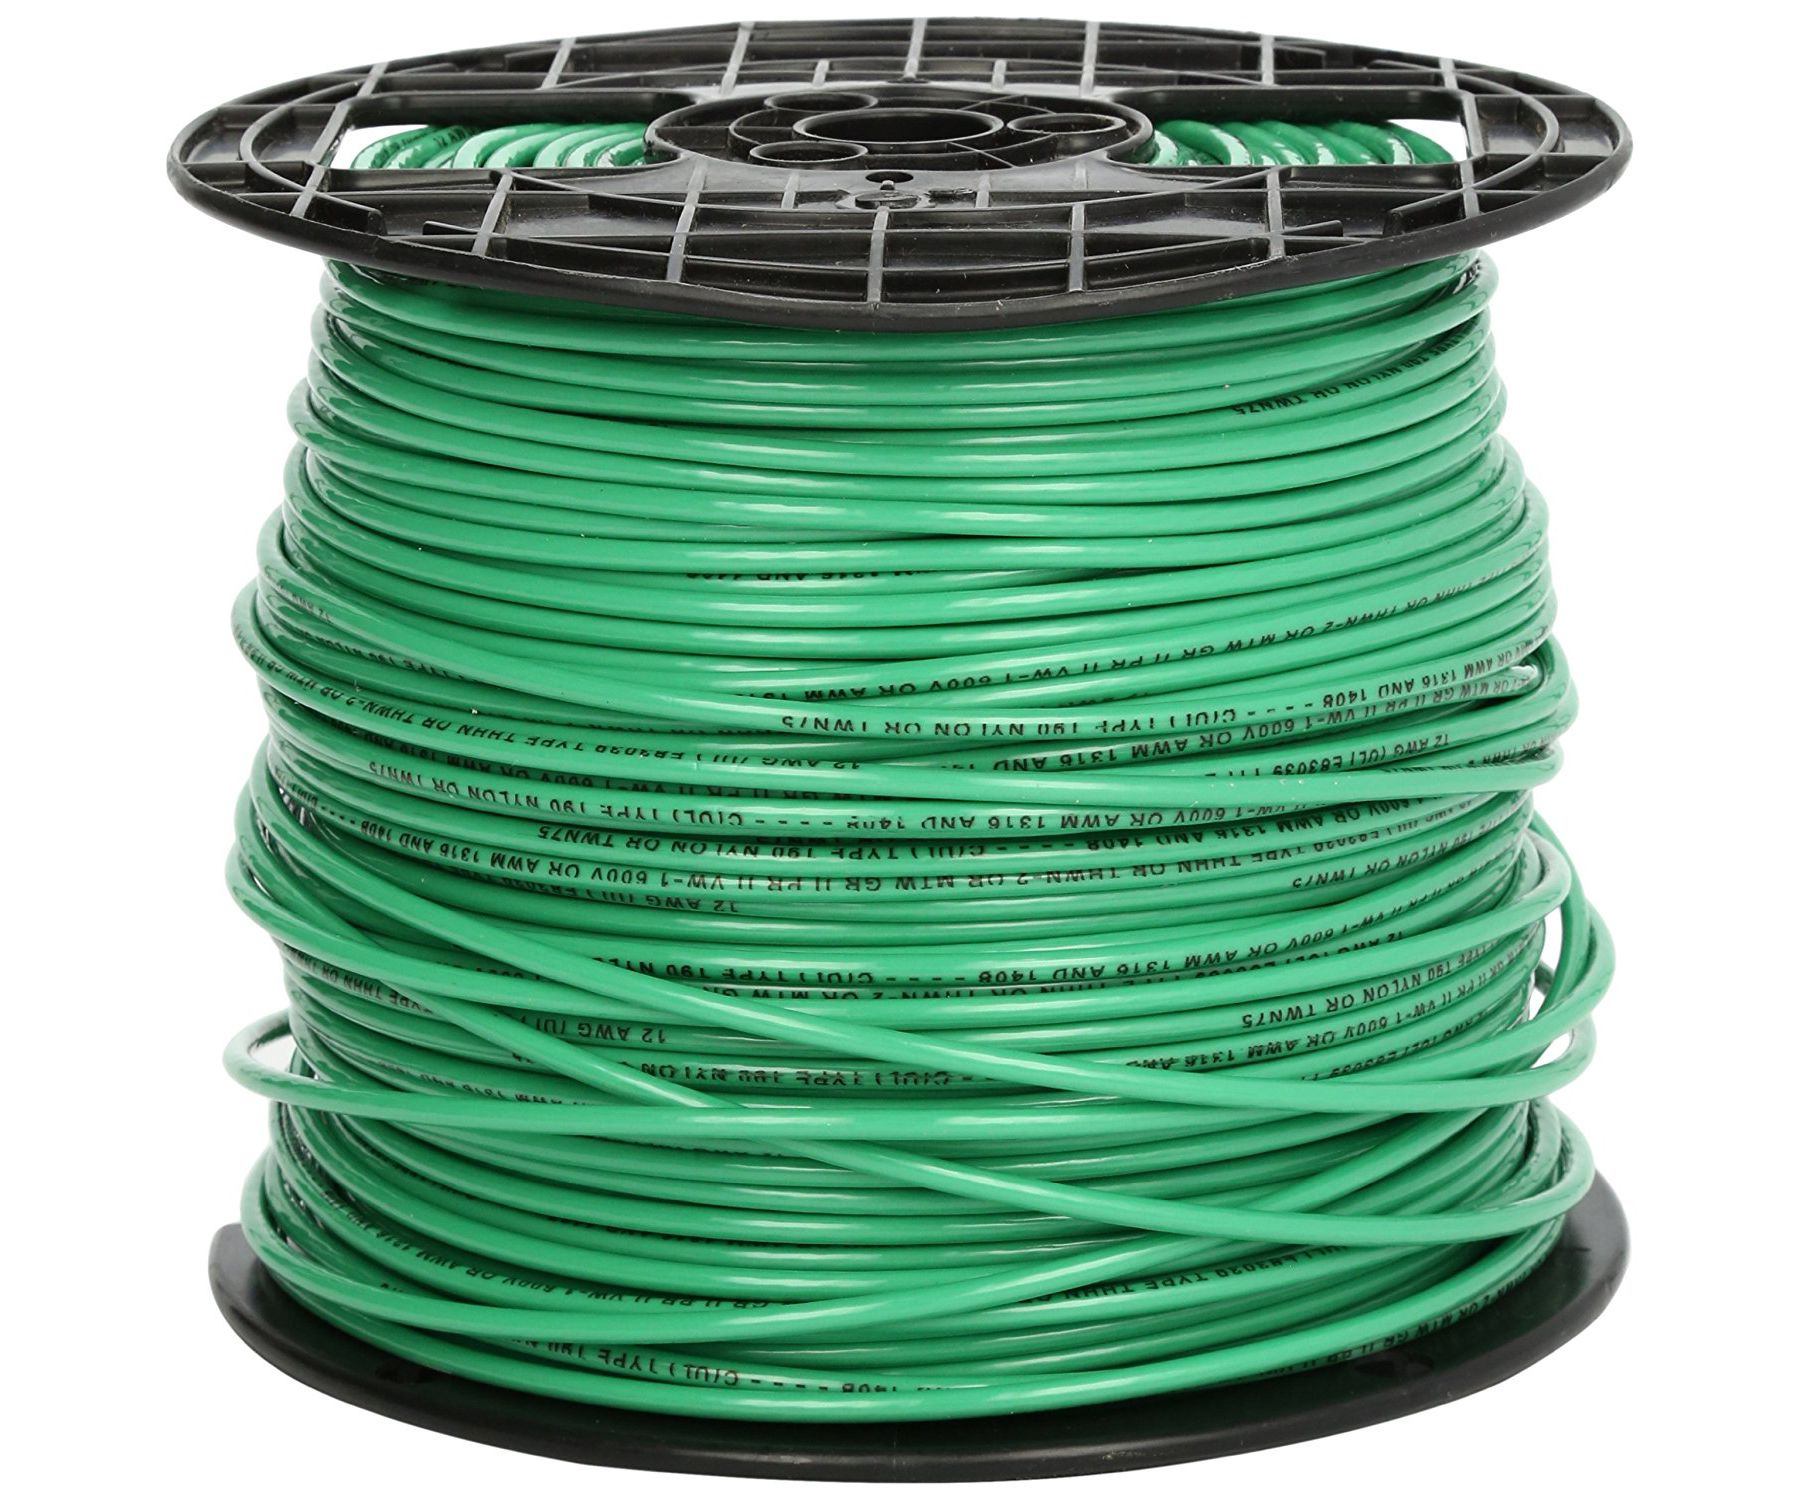 Spools Of Copper Electrical Wire Office Visio For Mac Mile 14gauge Galvanized Electric Fence Wire317774a The Home Depot Understanding Labeling Label 58f9899c5f9b581d591e8ff2 Lettering 1152874